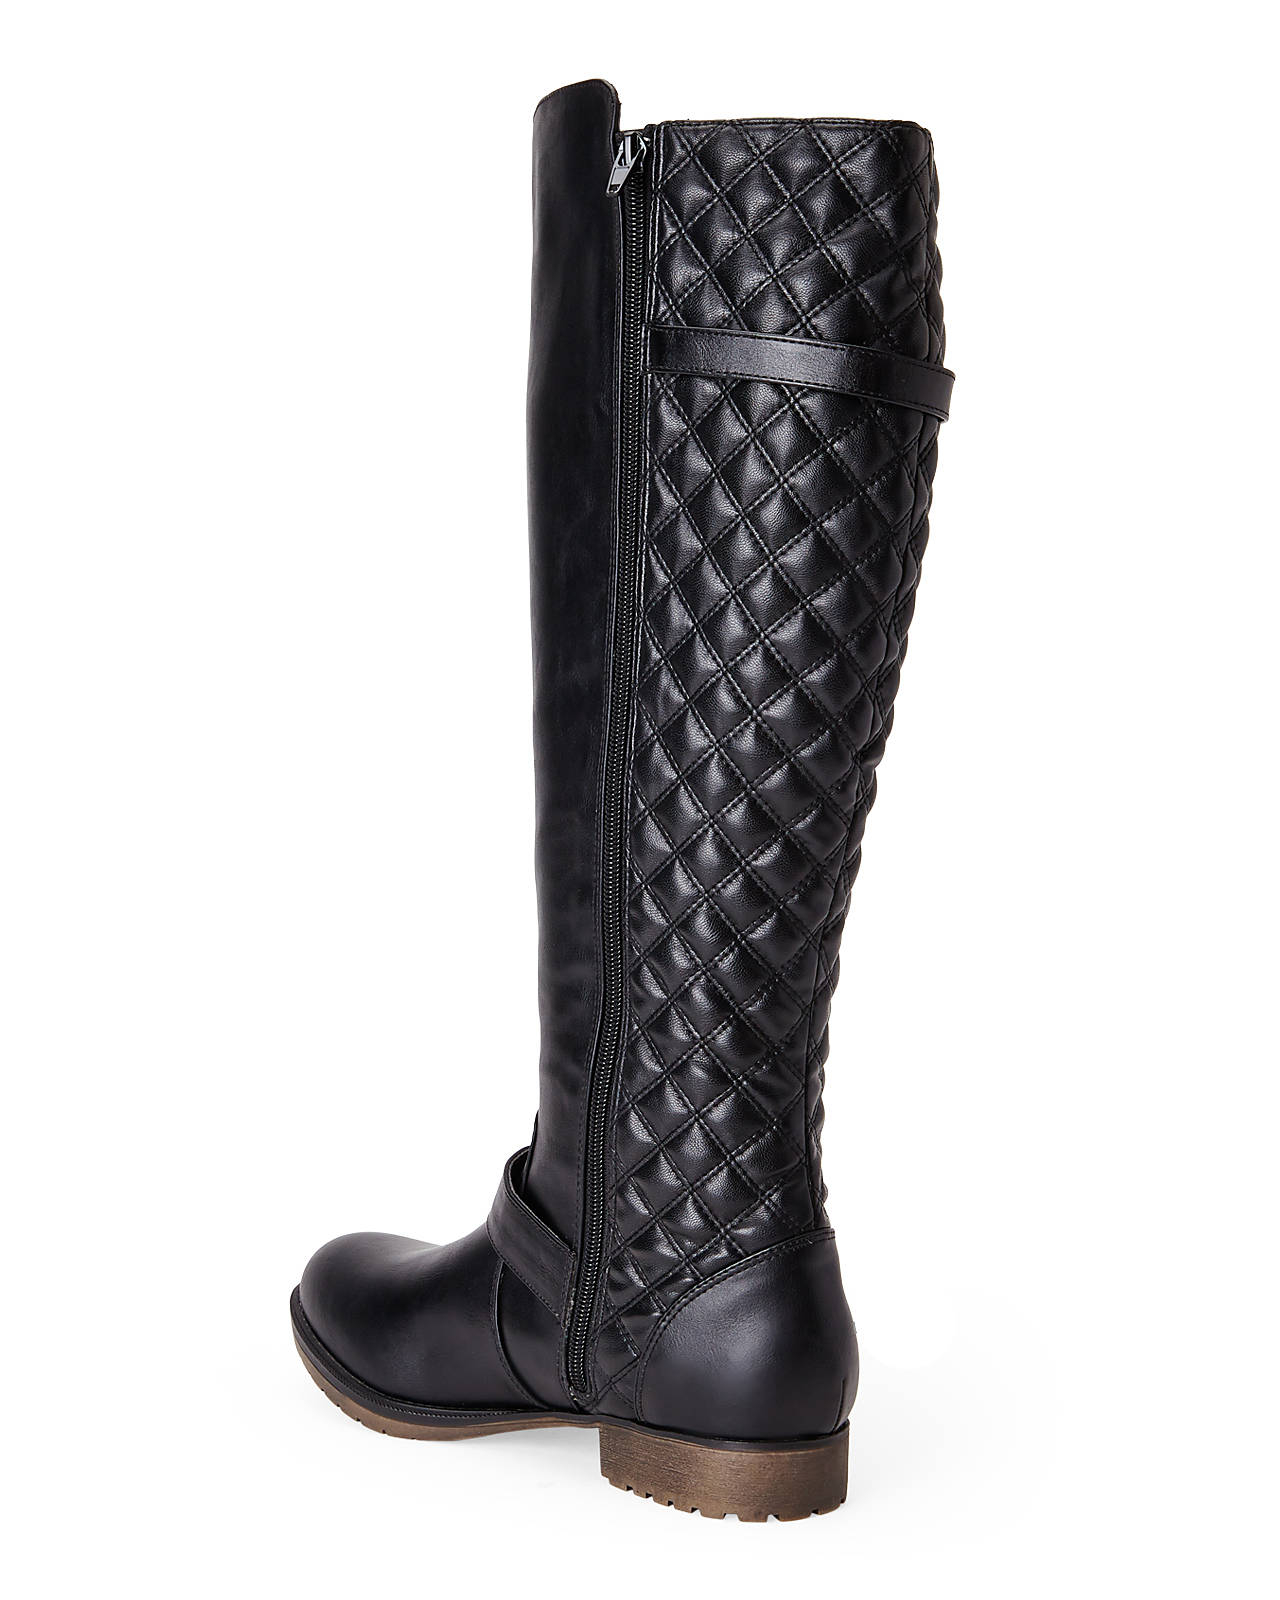 Steve madden Black Quilted Riding Boots in Black   Lyst